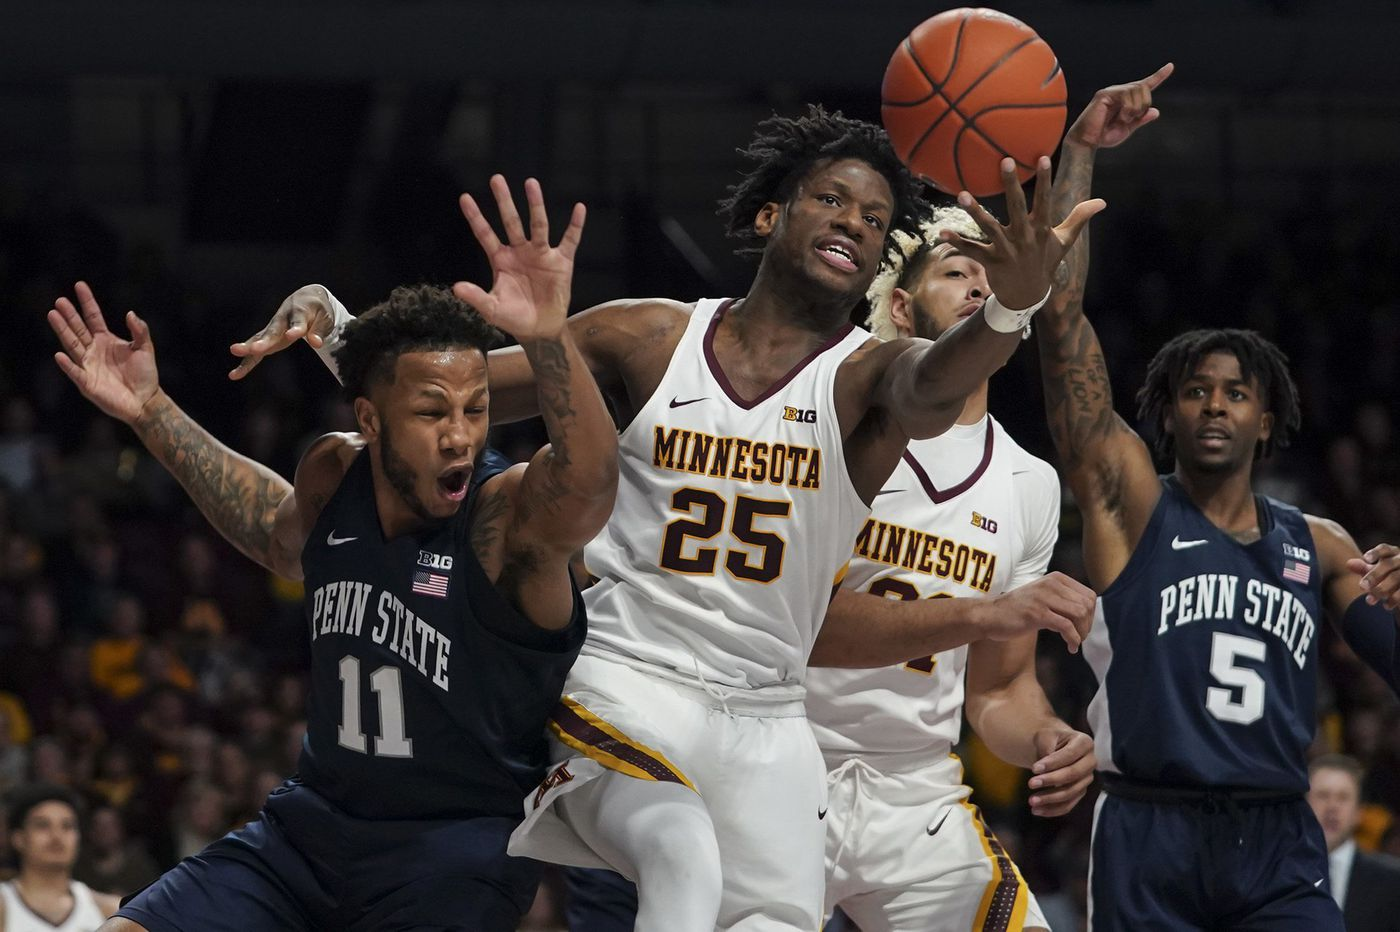 College basketball: Get ready for more strange occurrences